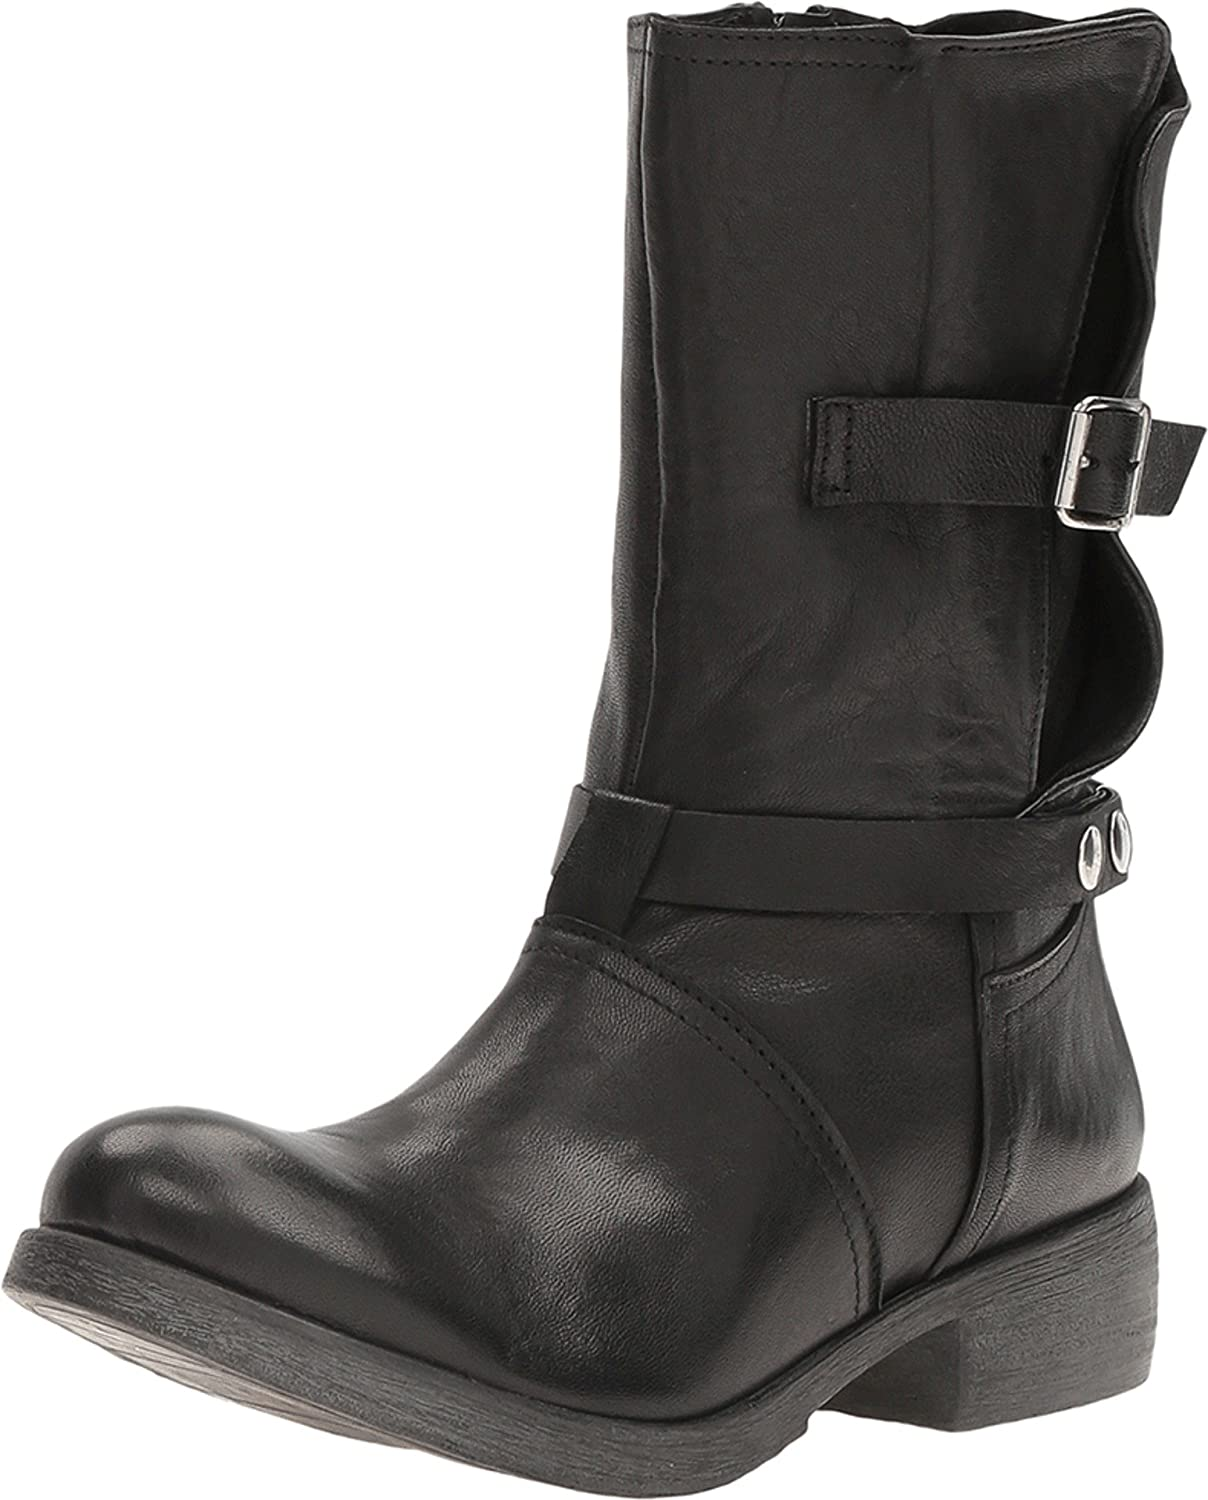 Massimo Matteo Womens Biker Boot with Buckle